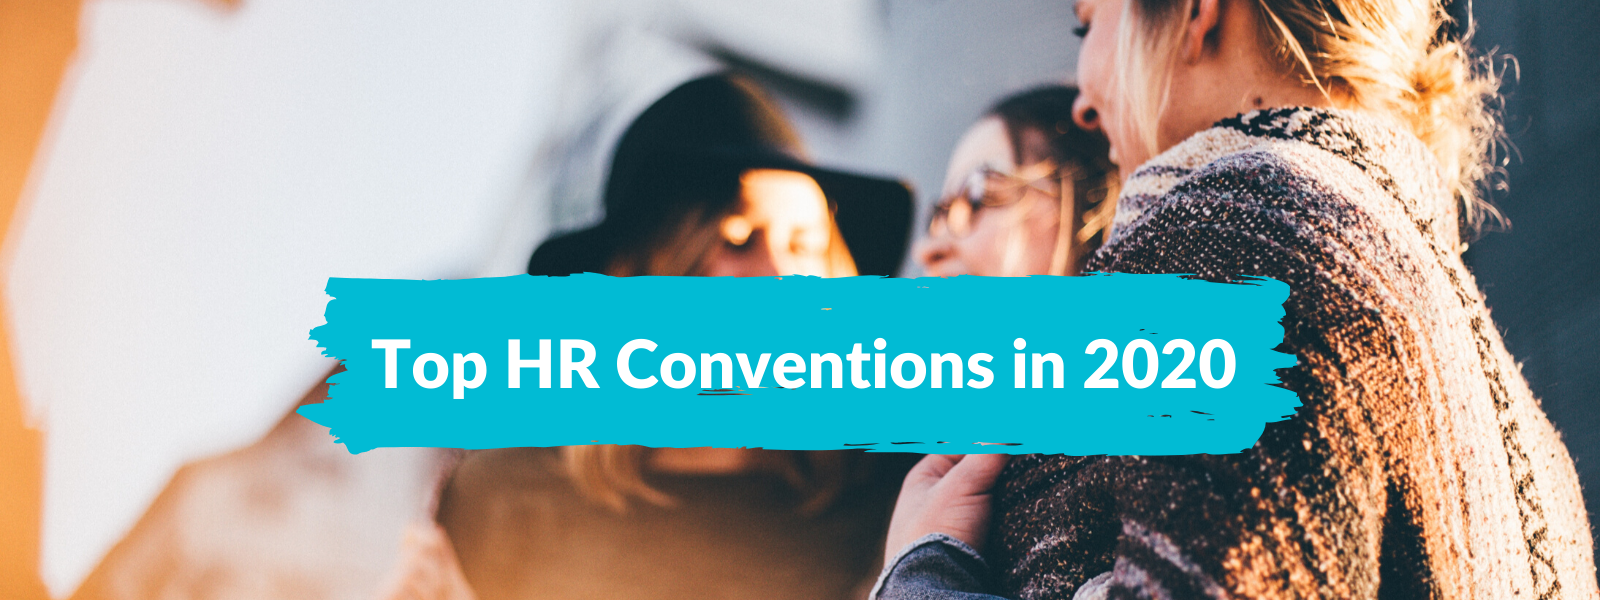 Best HR Conventions in 2020